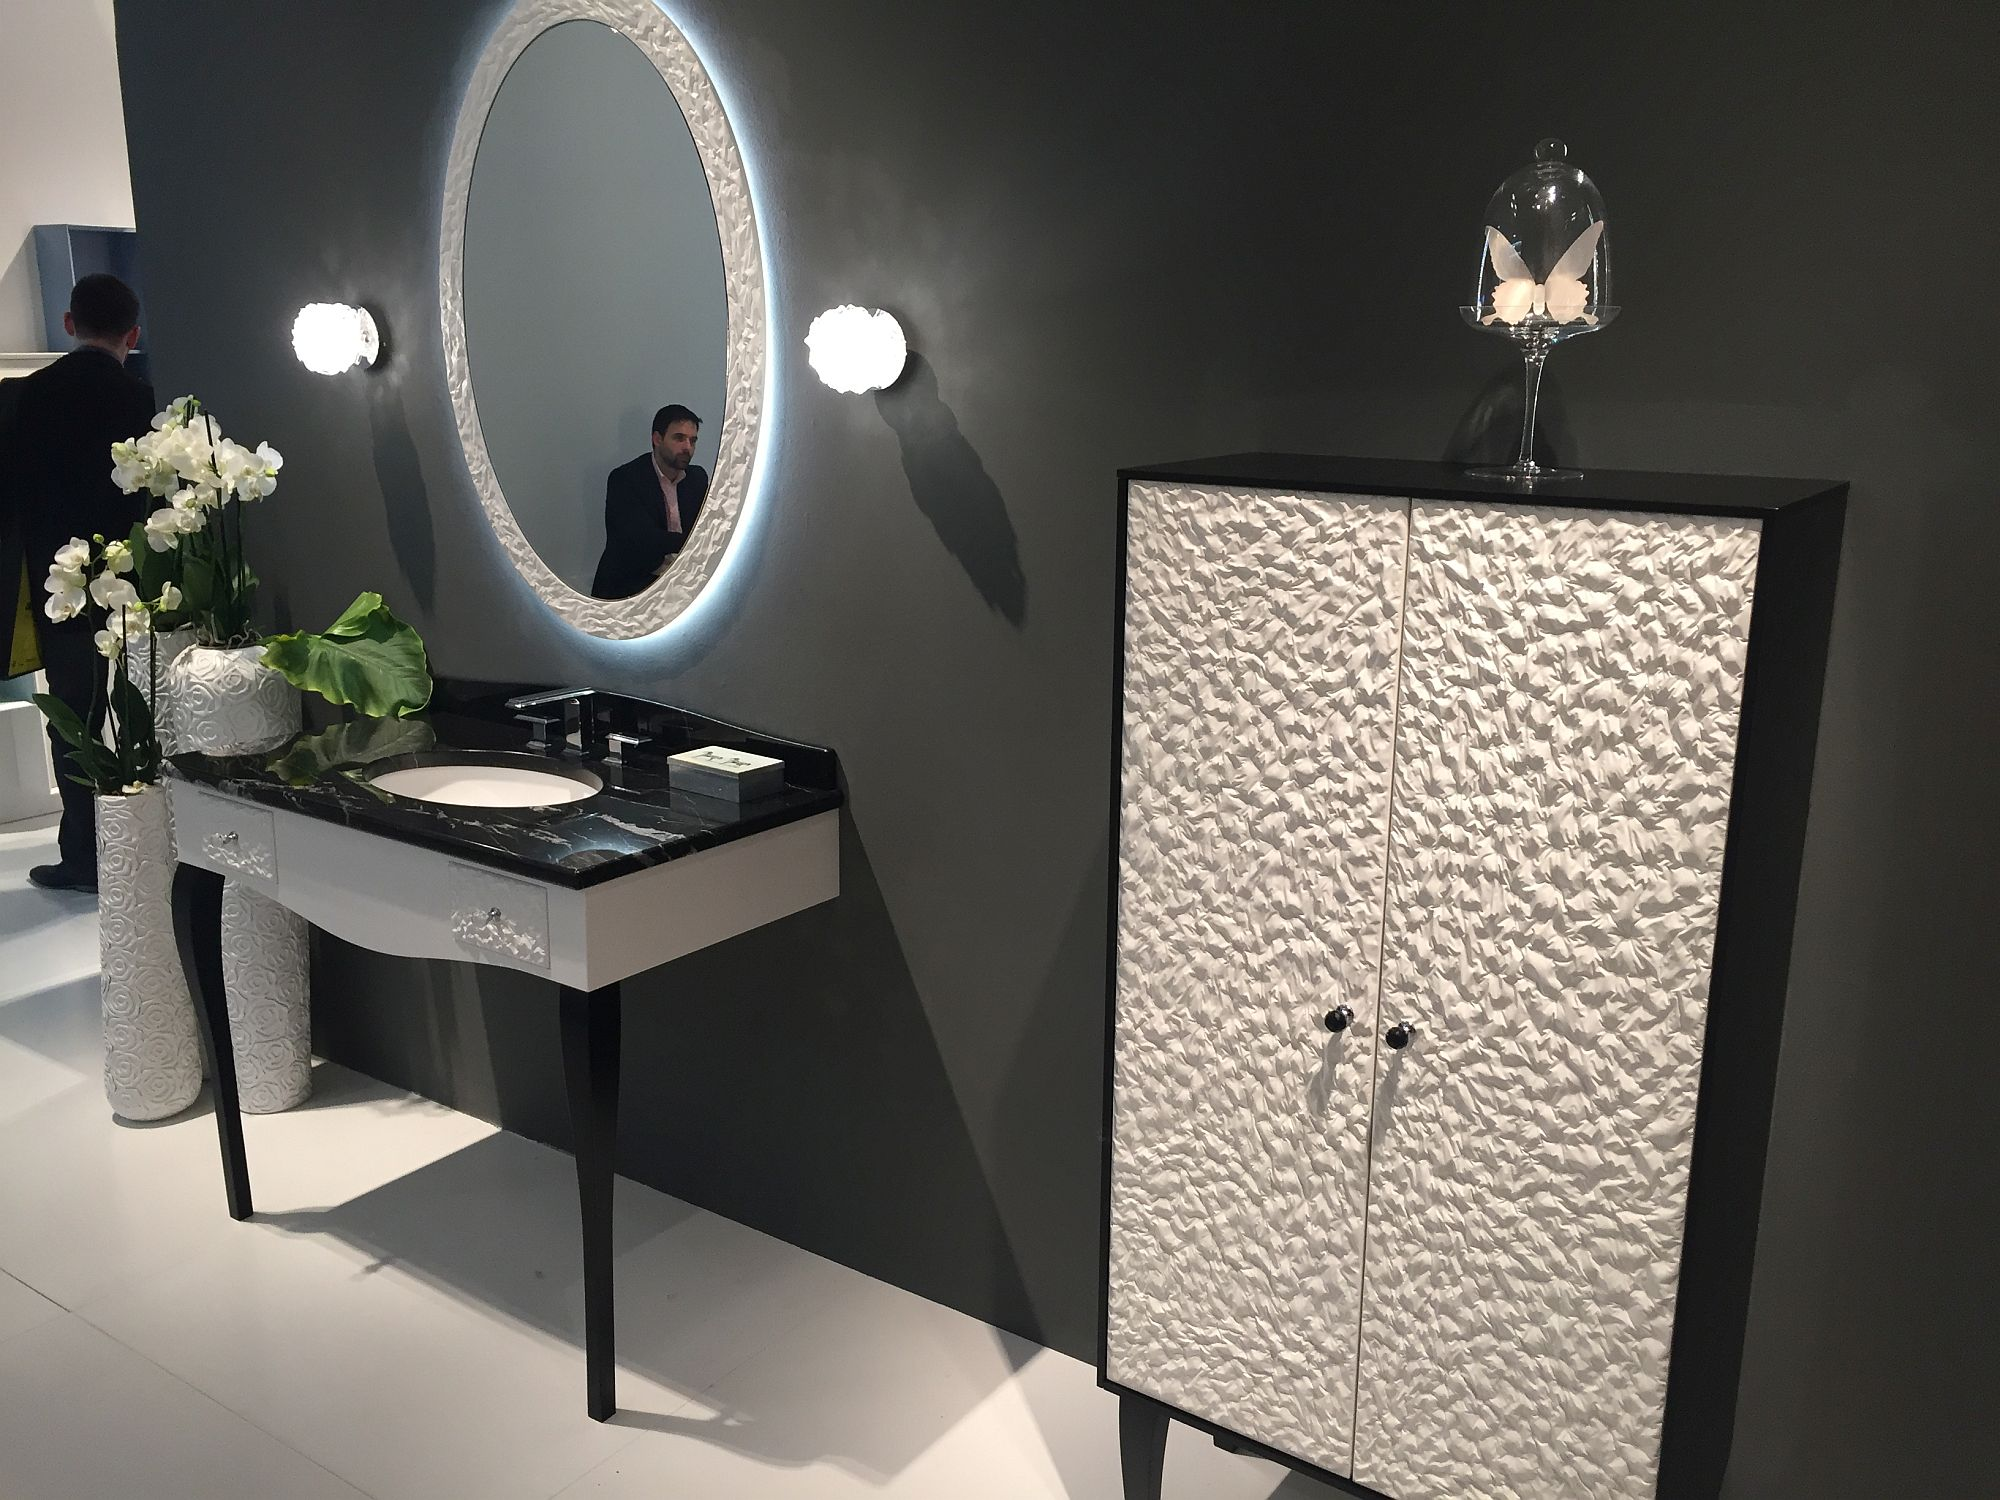 Art-deco-bathroom-with-a-sink-and-mirror-and-matching-vanity